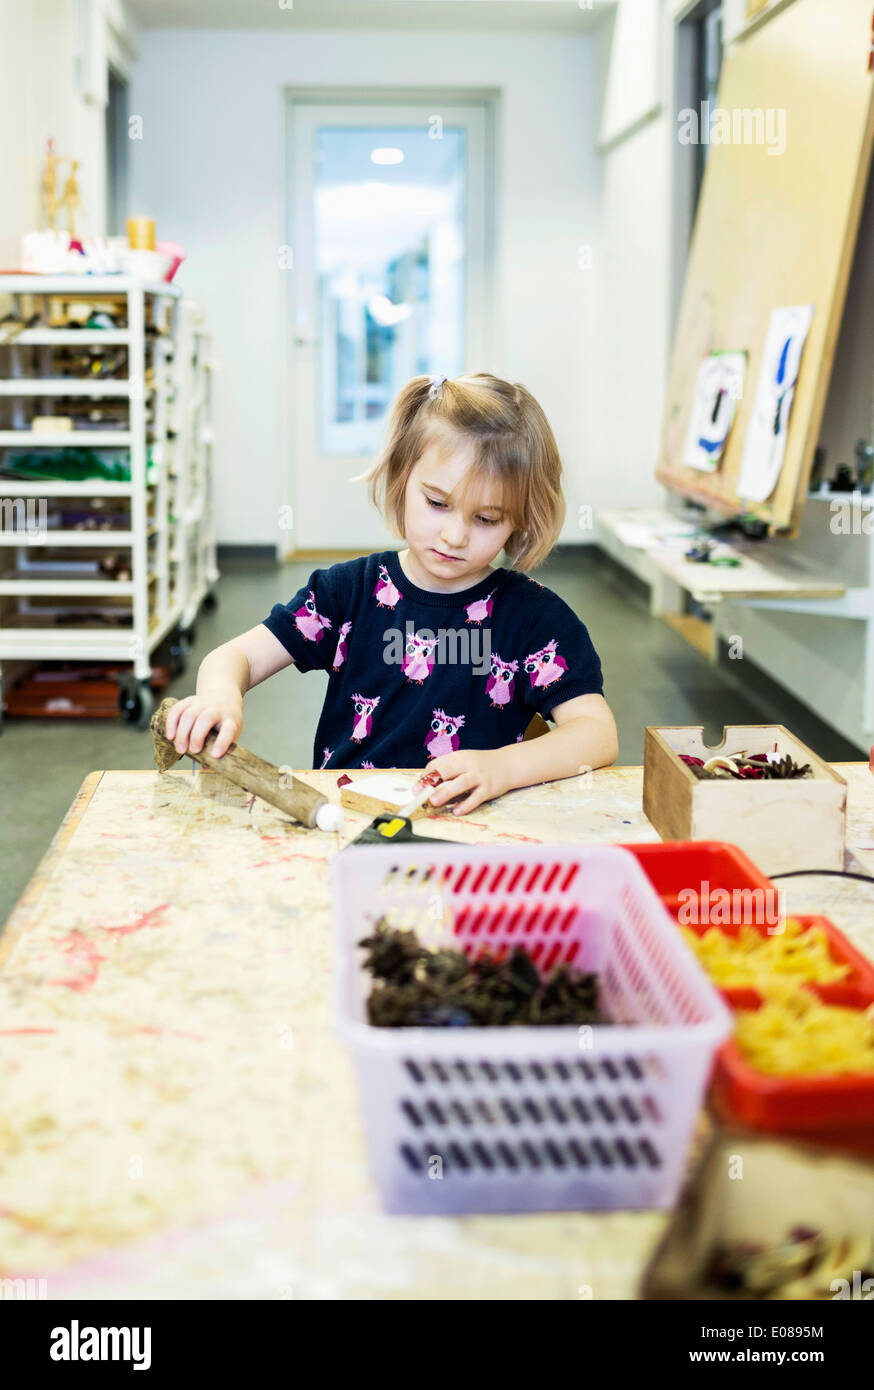 Girl making art product at table in kindergarten - Stock Image